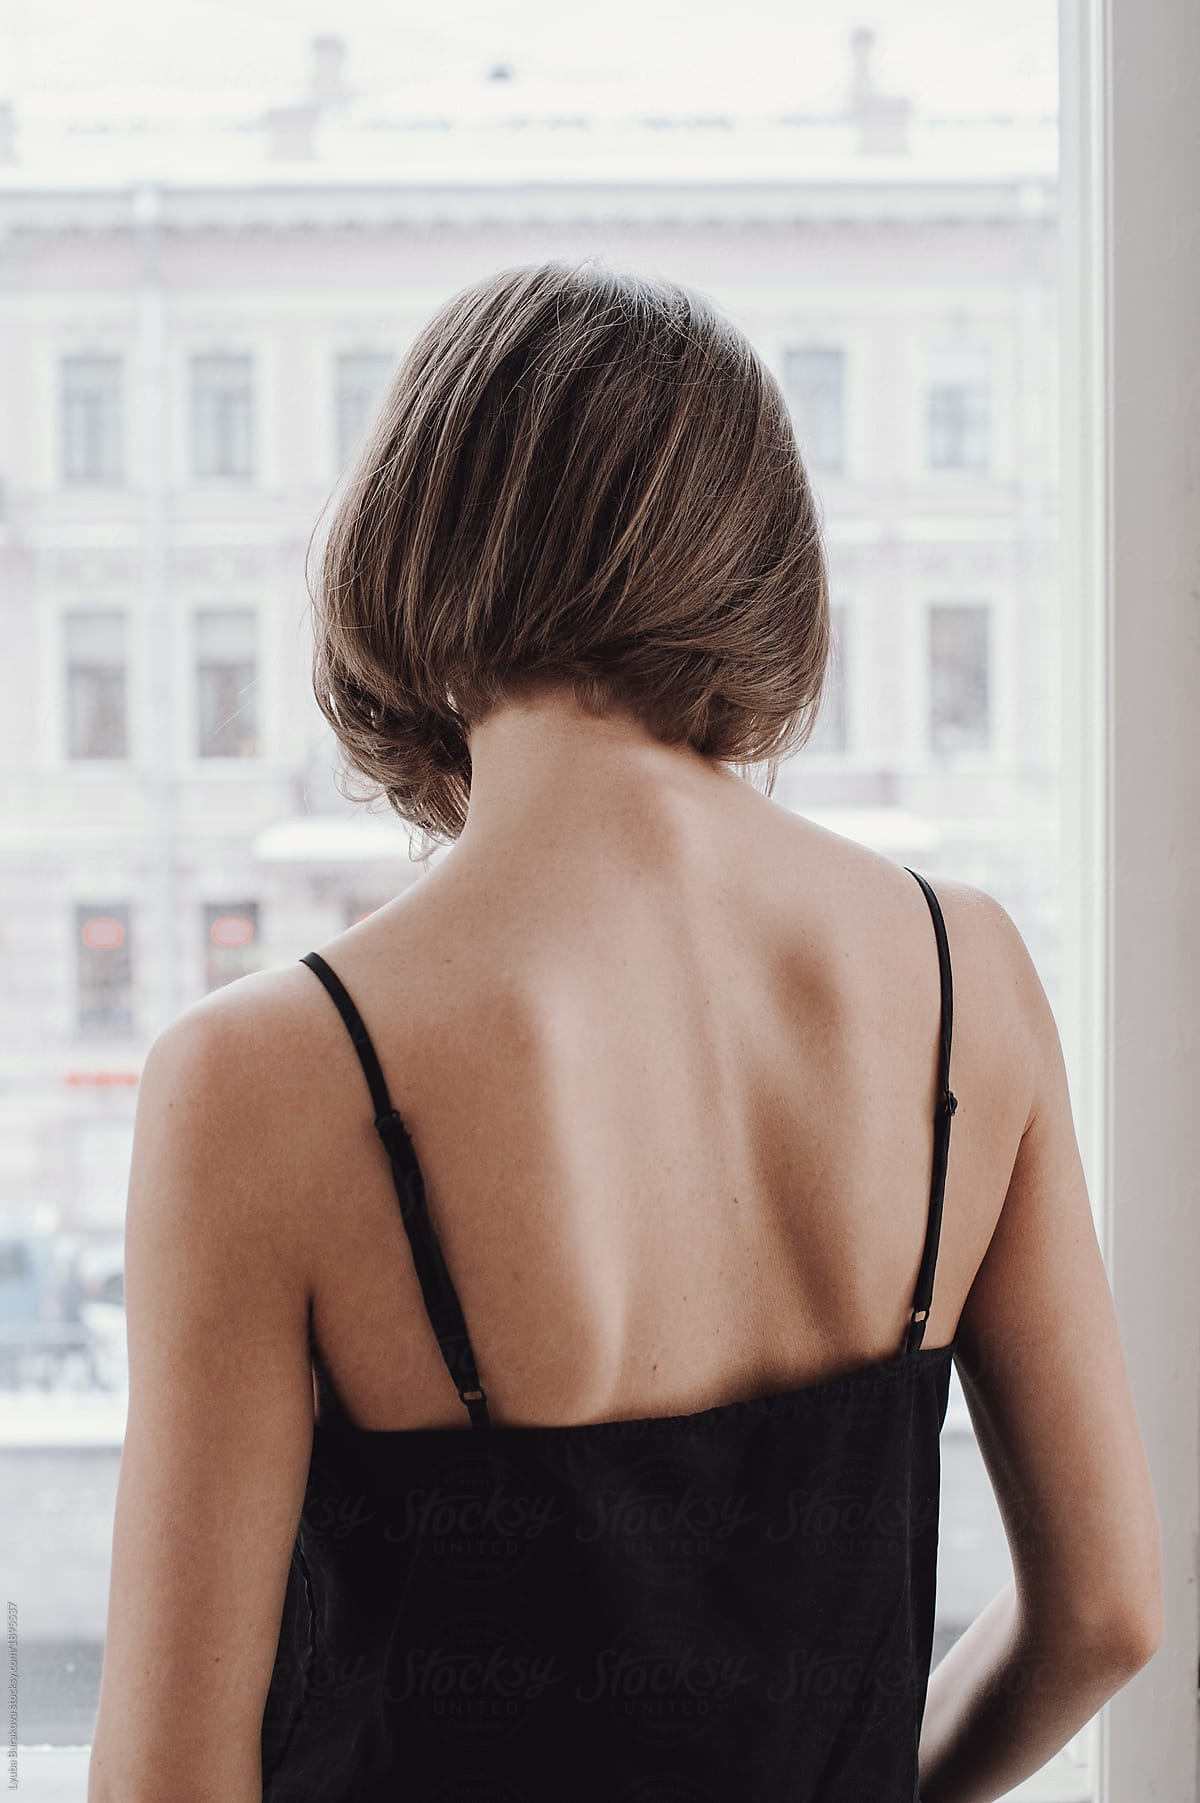 Back View Of A Woman With Short Haircut Stocksy United